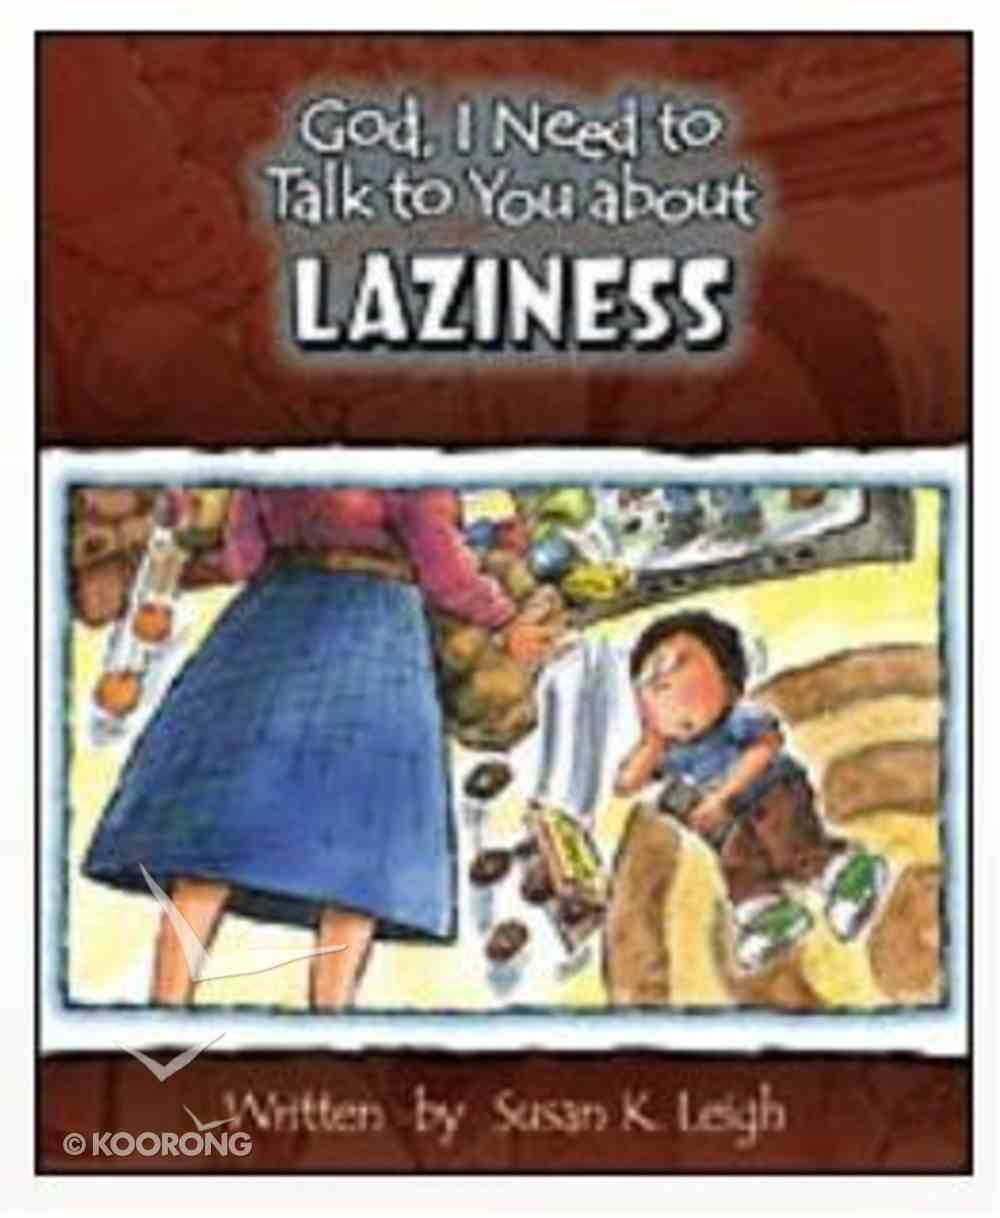 Laziness (God, I Need To Talk To You About Series) Paperback